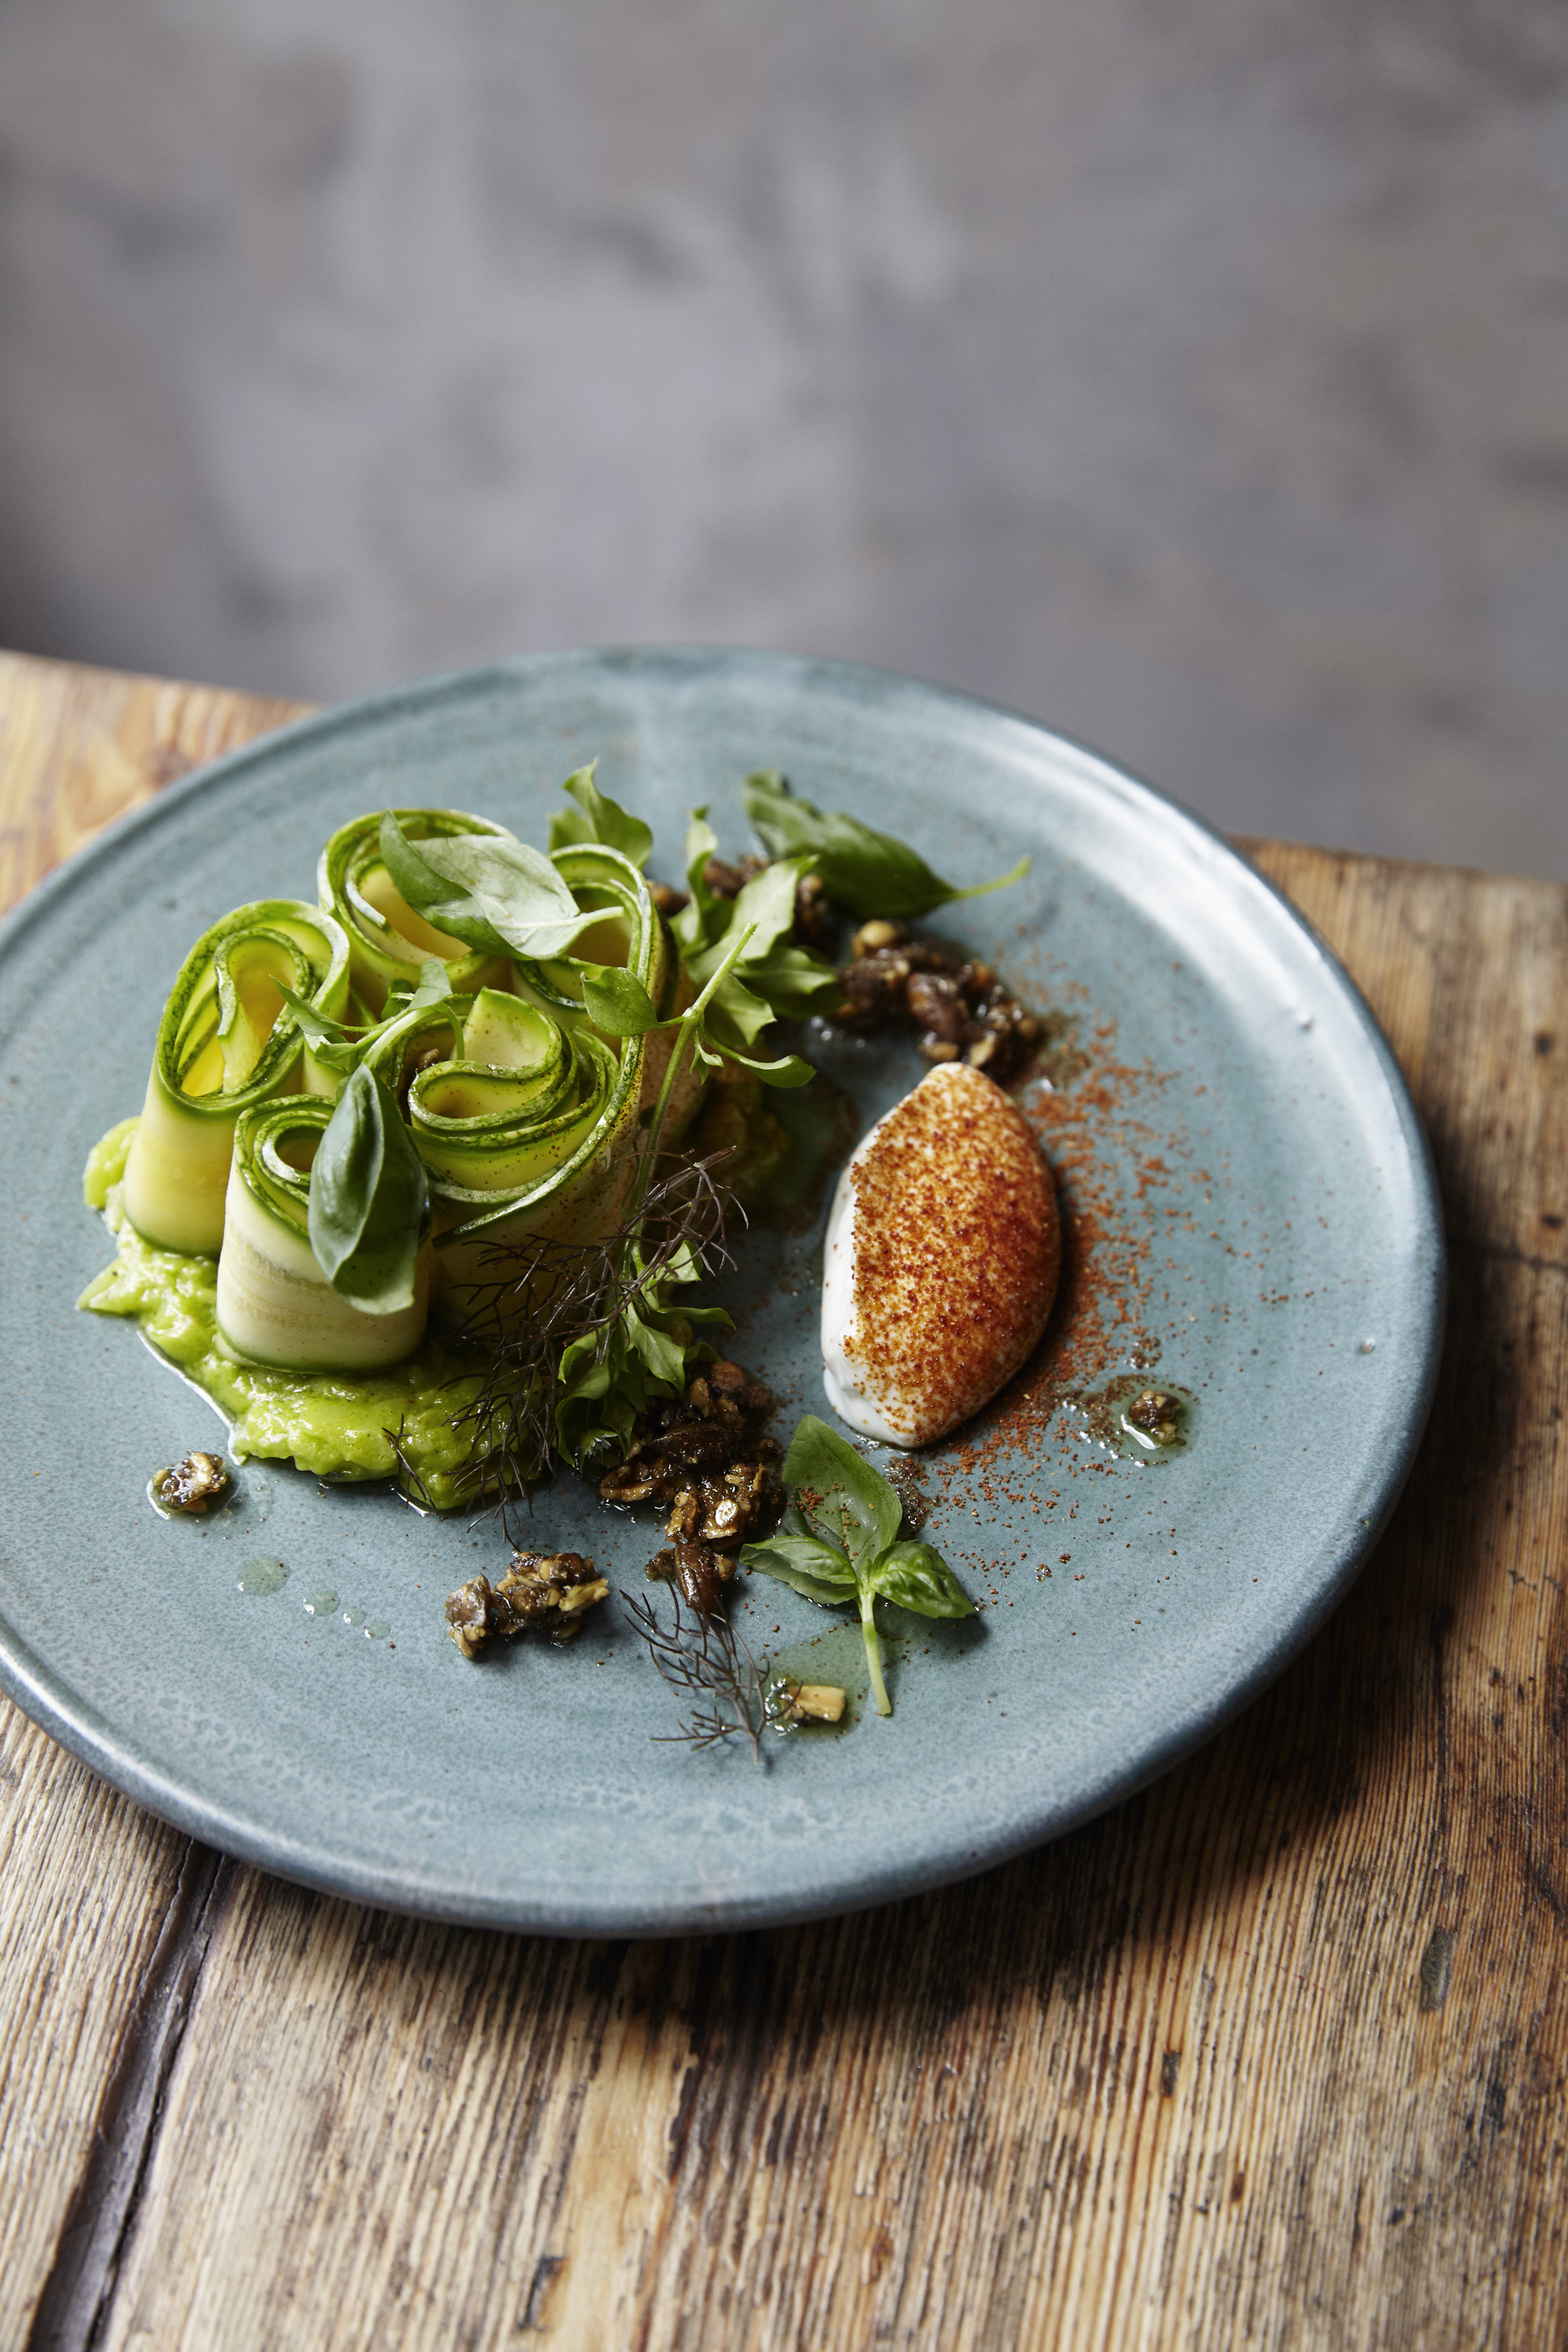 A host of mid-2010s trends coalesced around The Dairy in Clapham Common, a restaurant that proved a hit in the industry